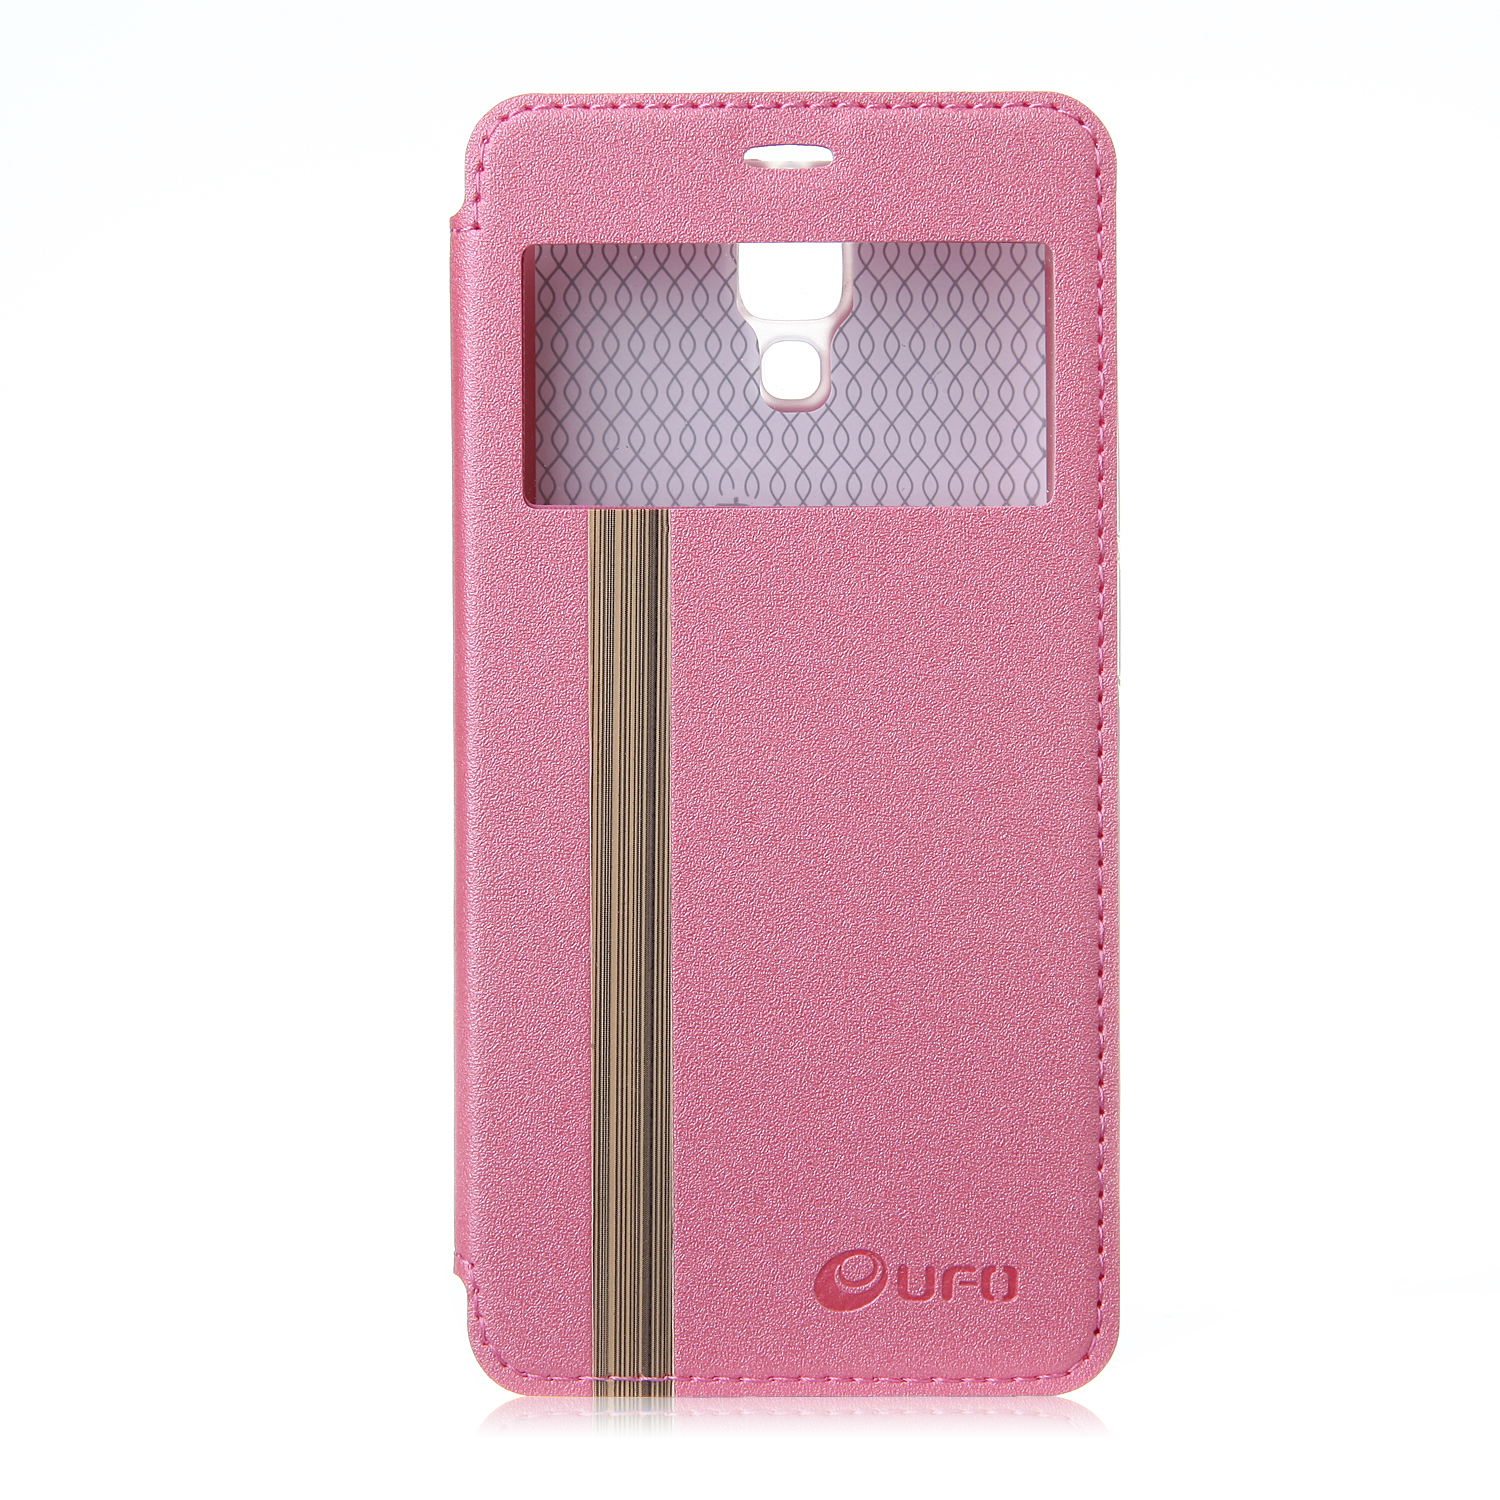 Leather Flip Cover Case Stand Case for XIAOMI MI4 Smartphone Pink